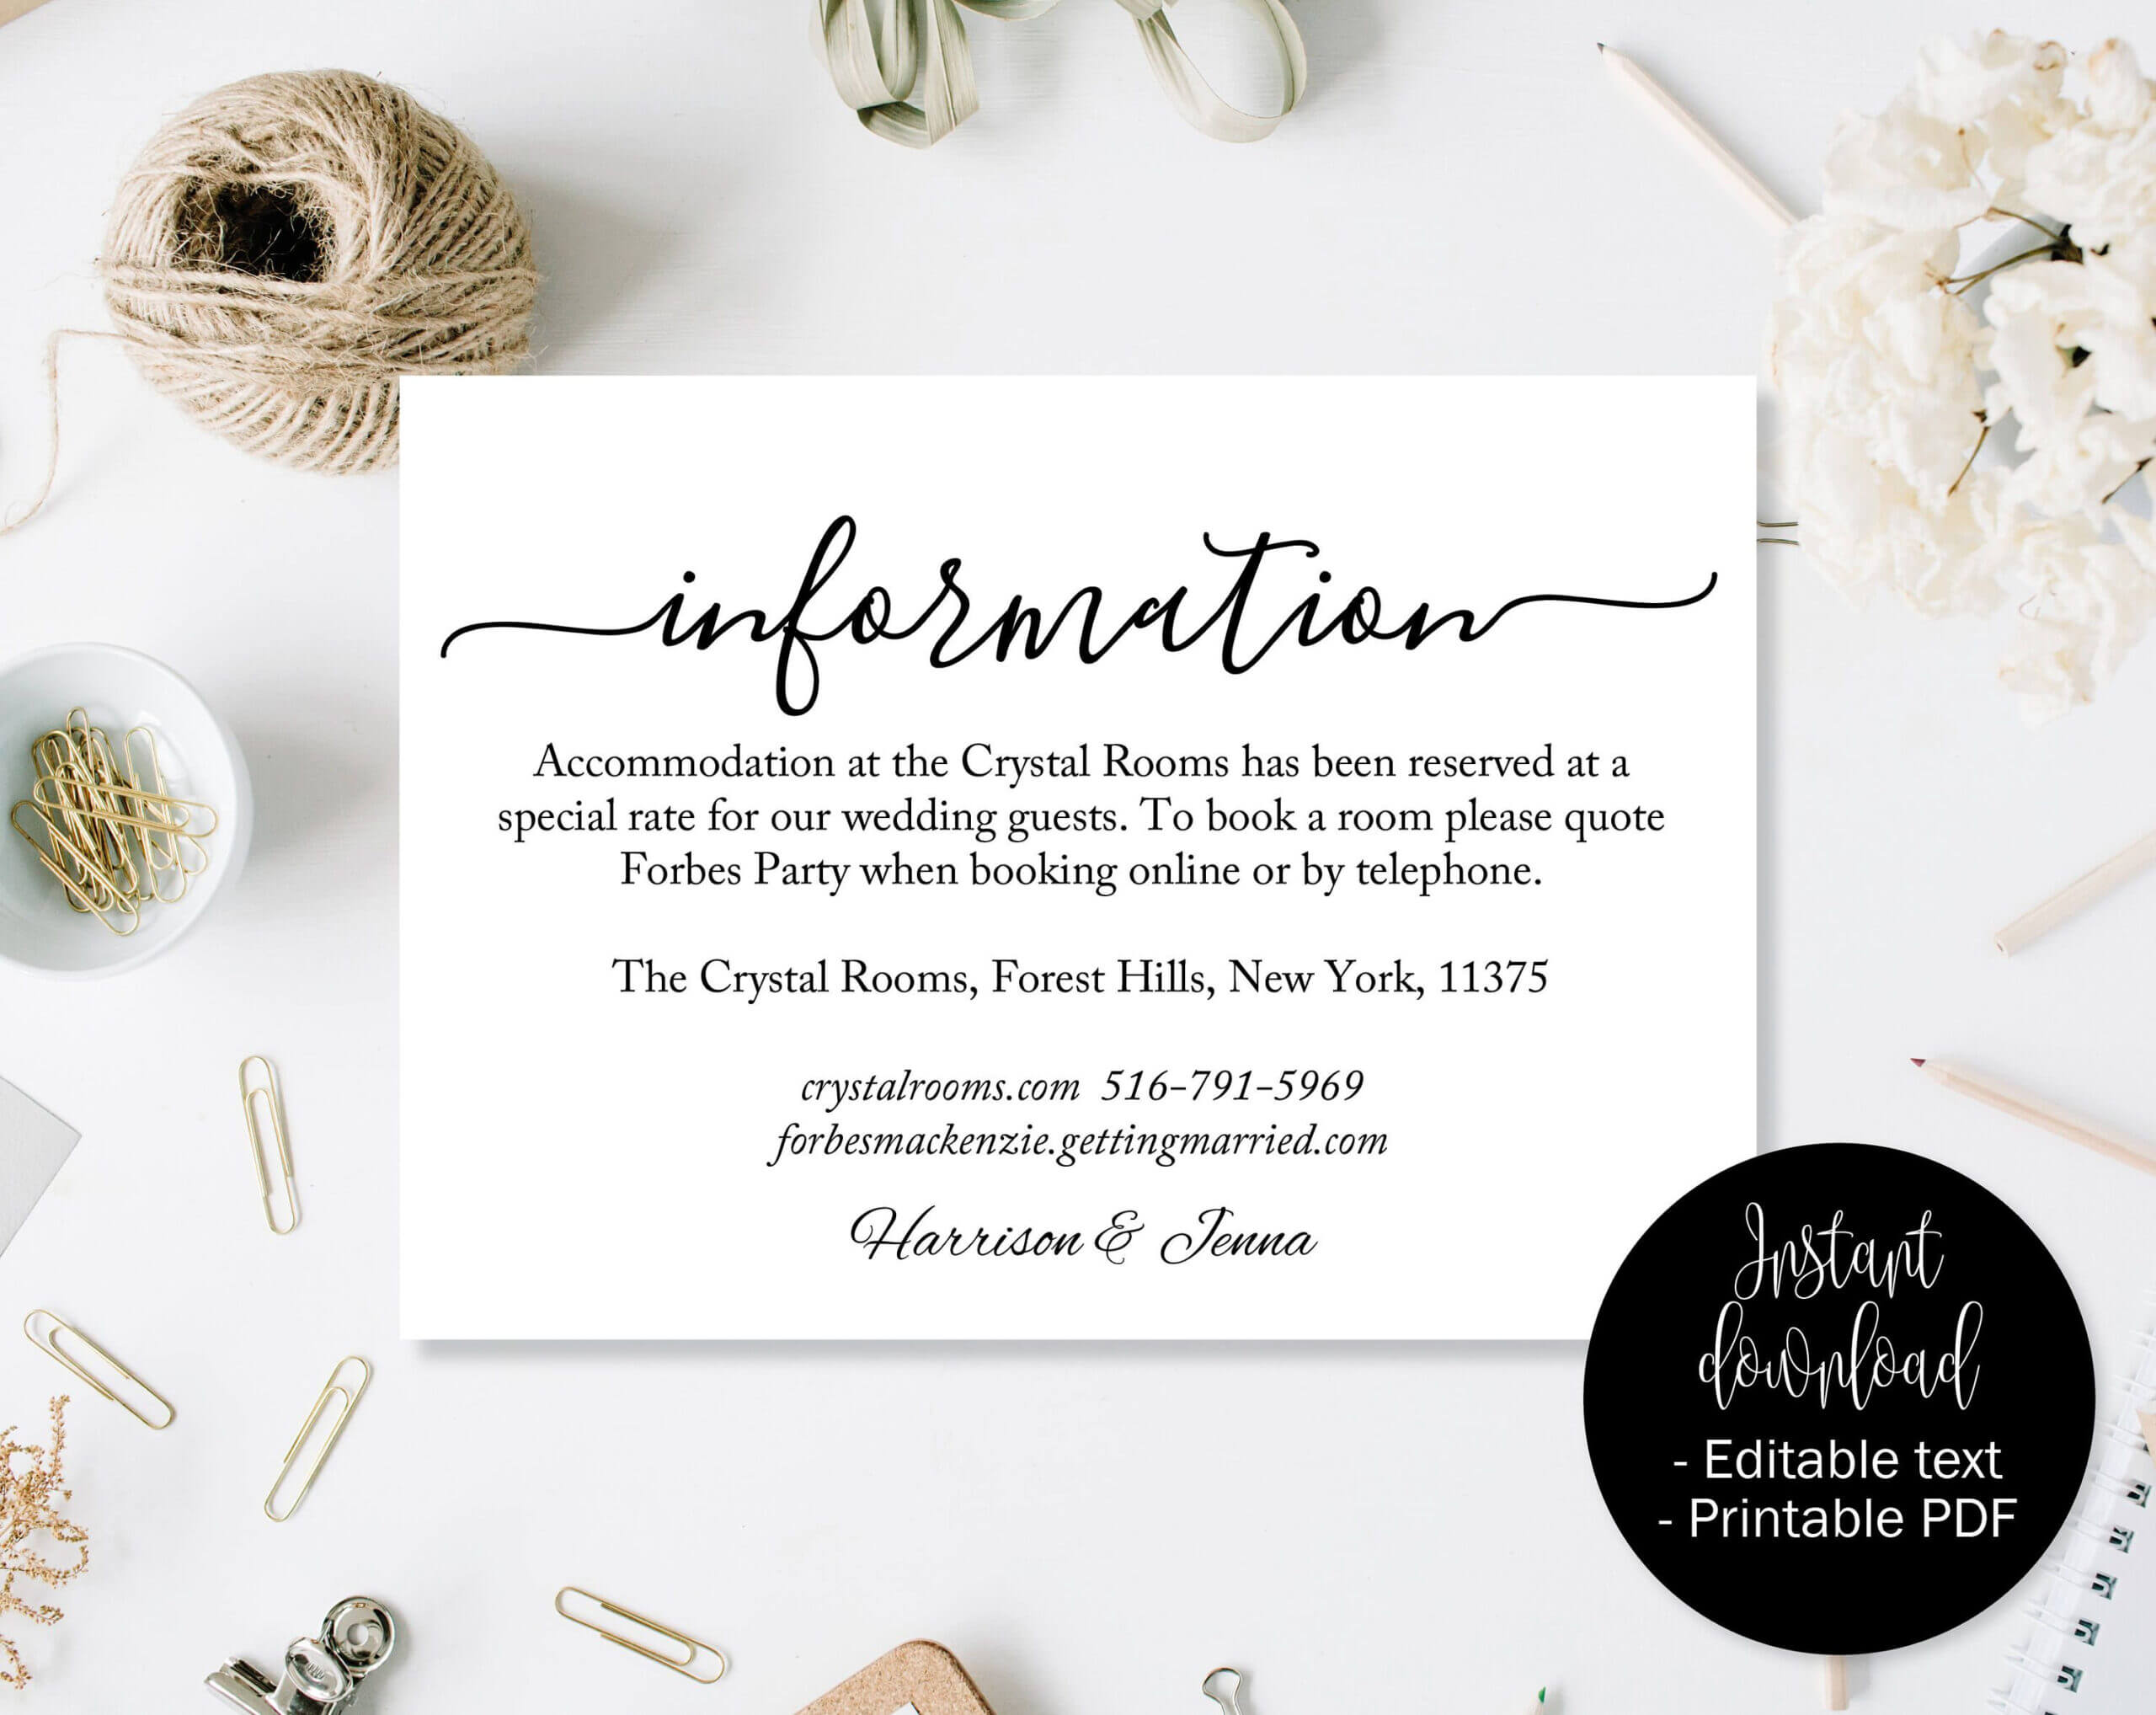 Wedding Guest Details Template, Wedding Guest Accommodation For Wedding Hotel Information Card Template